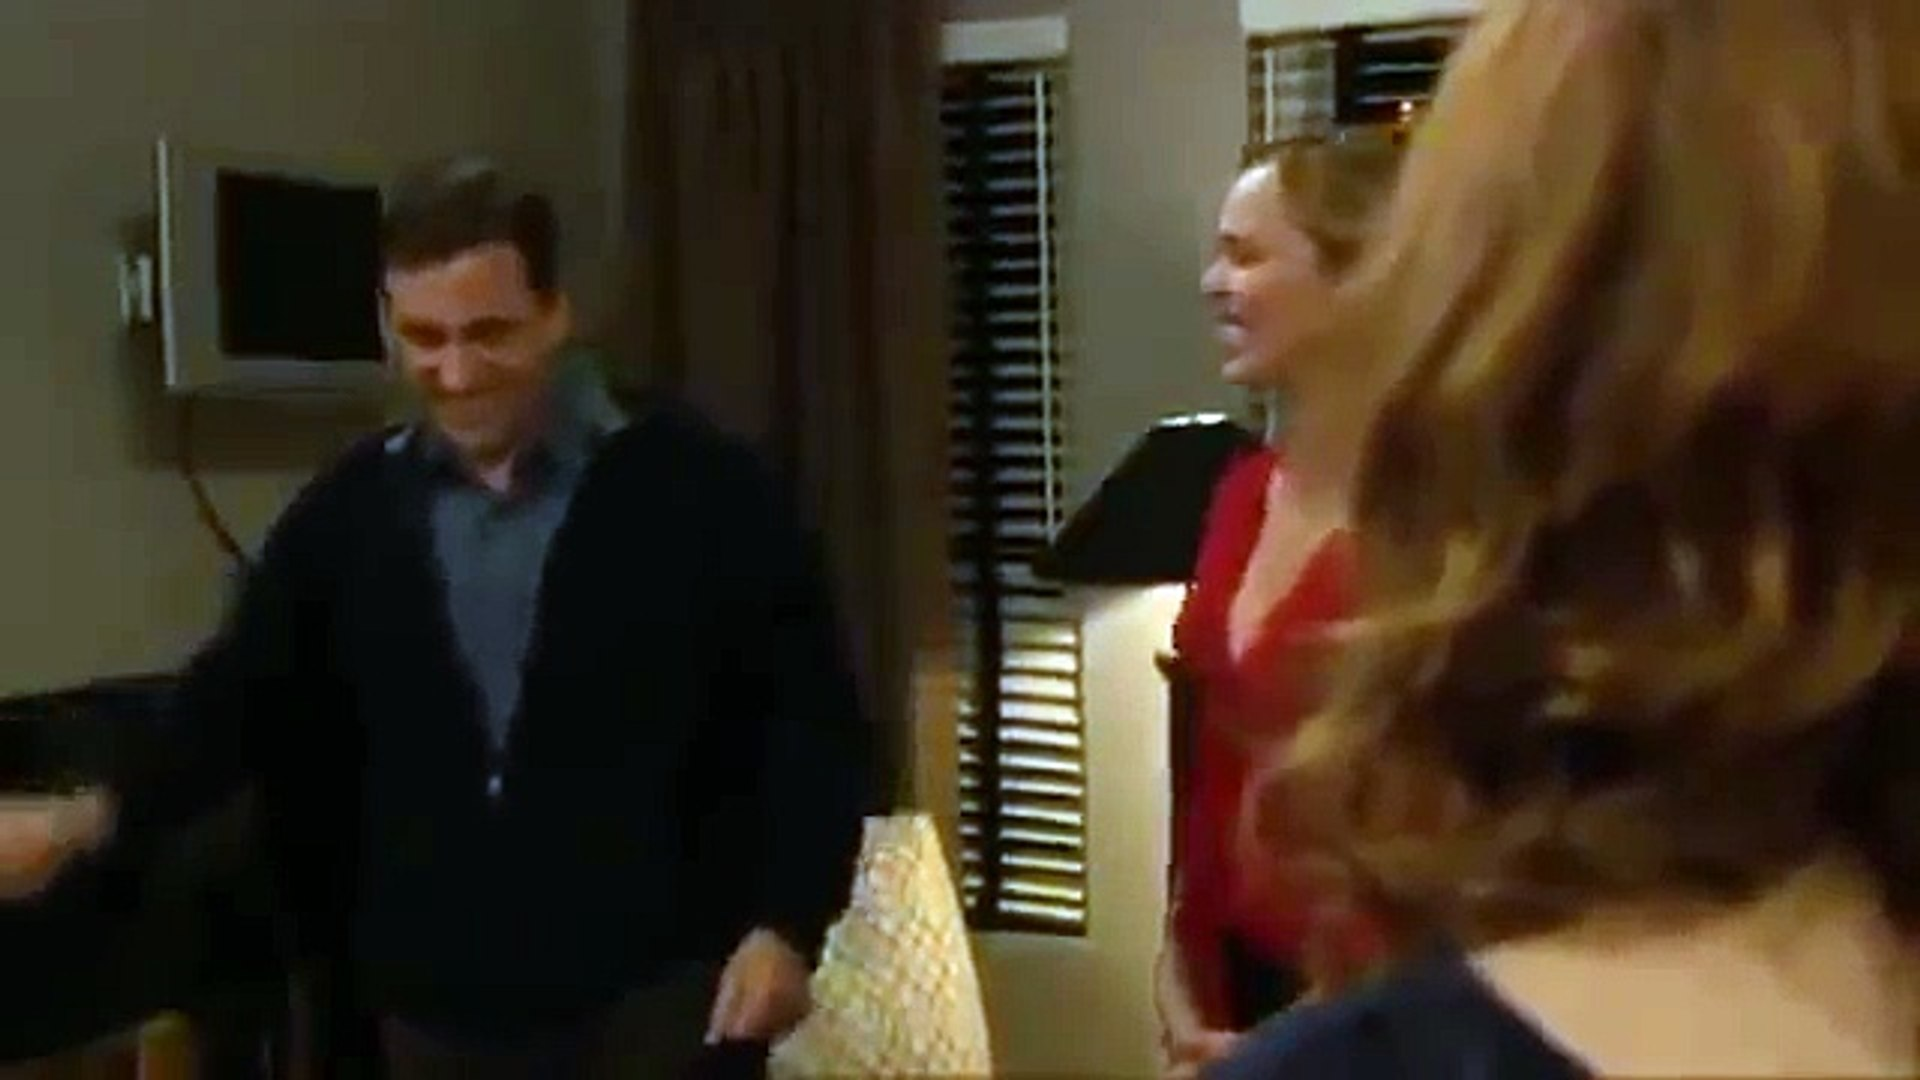 Folds right into the wall - The Office Blooper - Michael Scott plasma TV